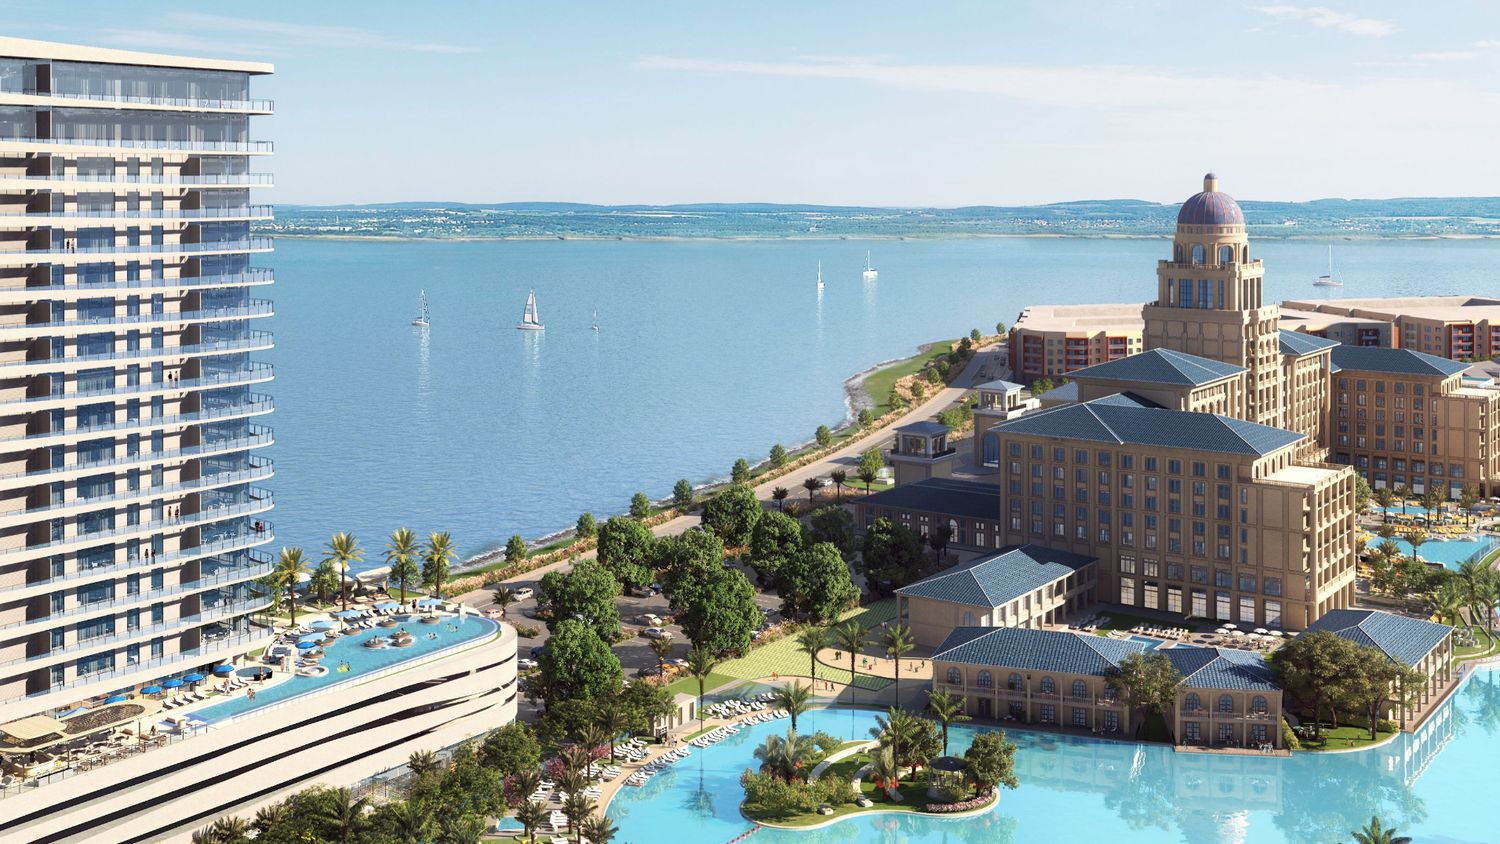 The Sapphire Bay Resort & Conference Center will include more than 500 hotel rooms on Lake Ray Hubbard.